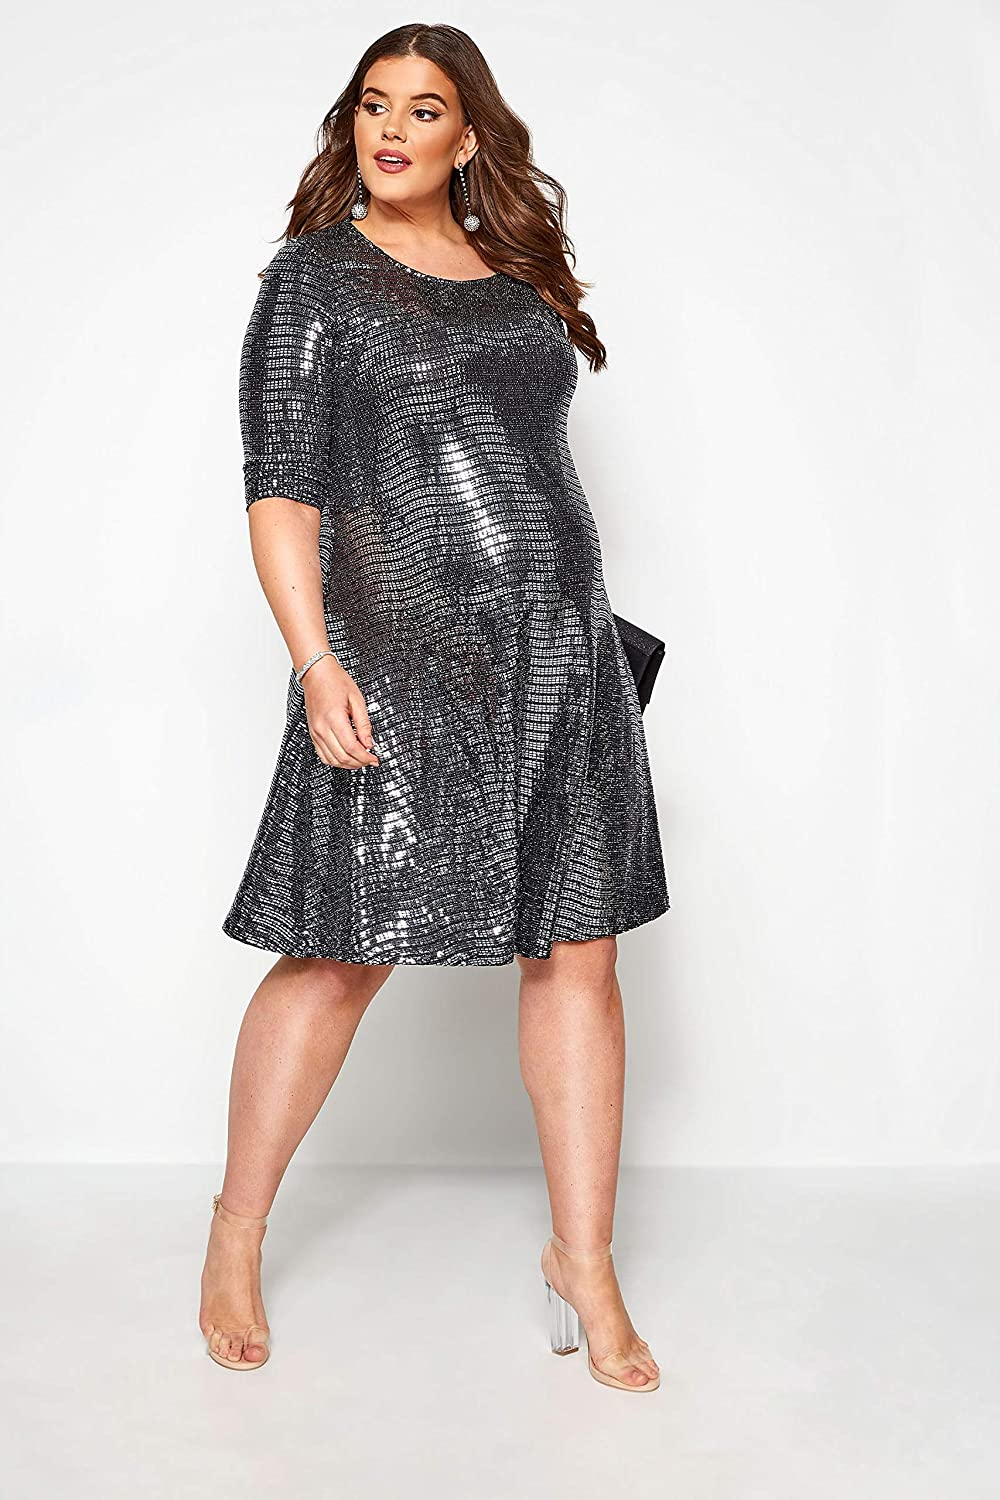 Yours Clothing Womens Plus Size Maternity Sparkle Swing Dress